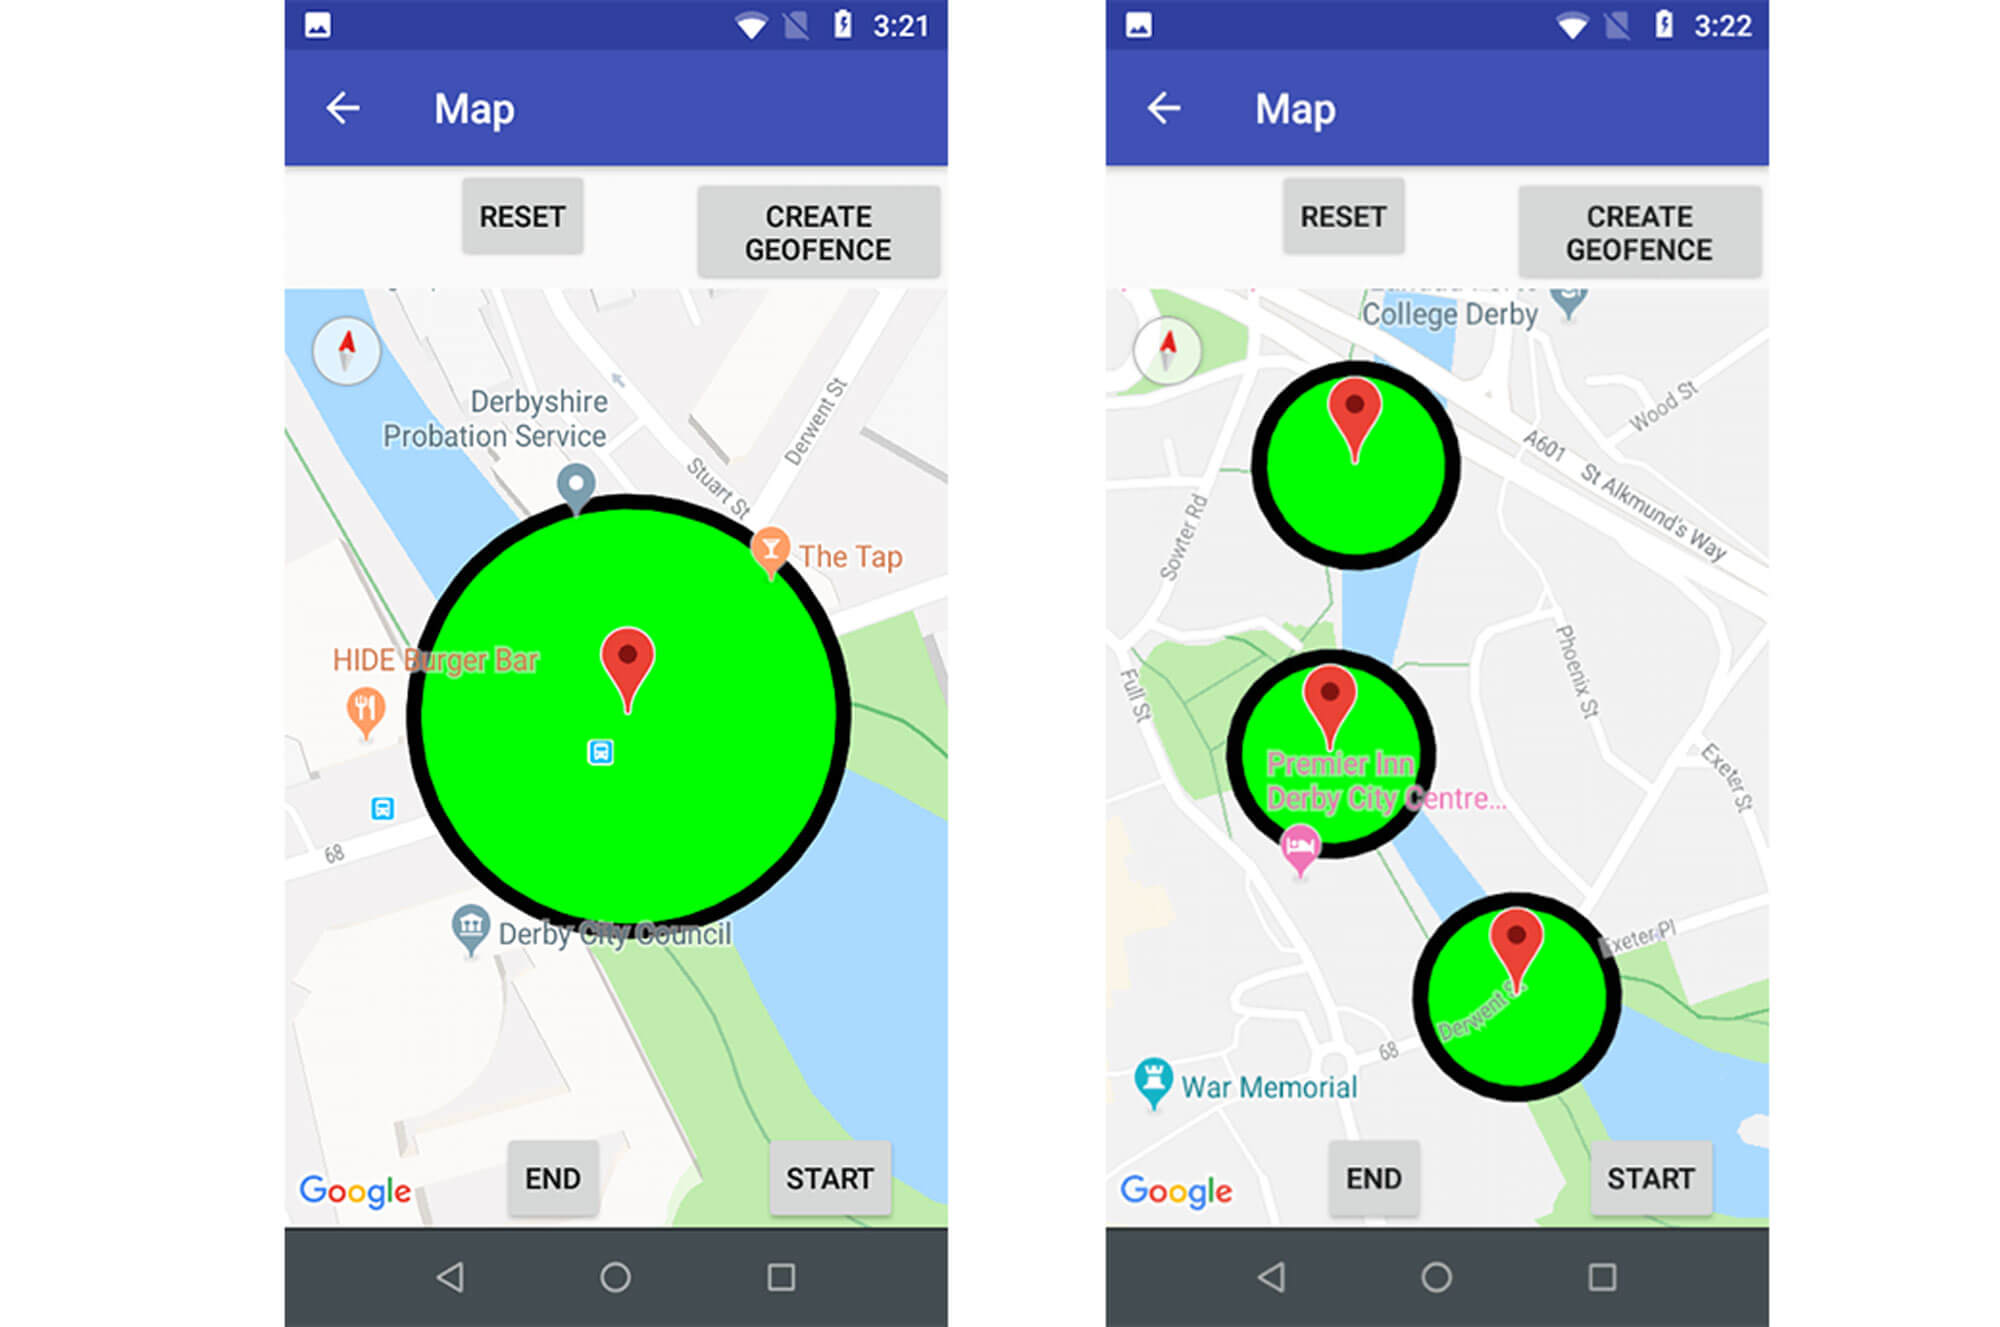 A selection of screen grabs from a mobile phone app